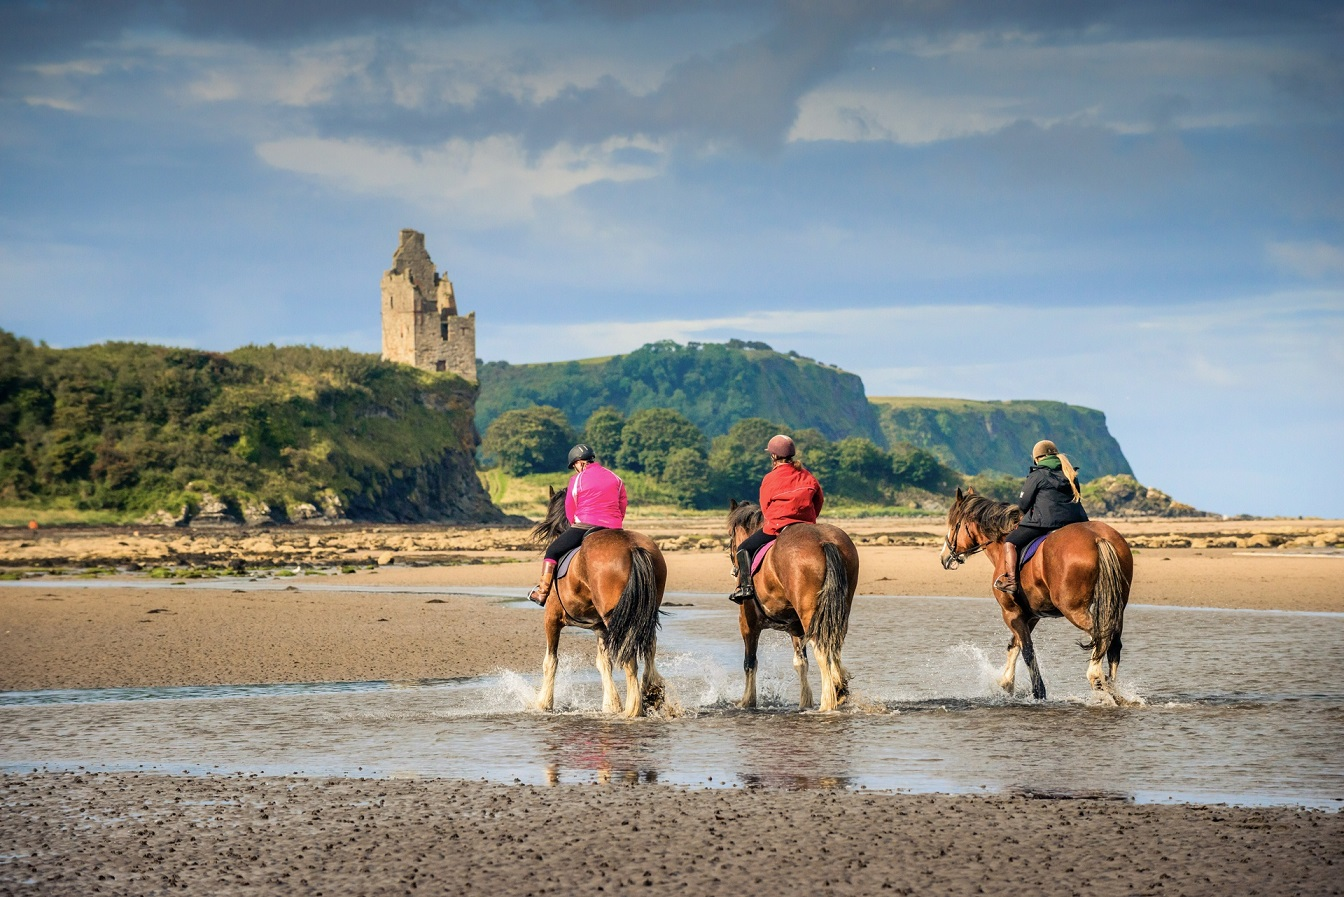 Three horses are ridden through the water on a beach with ruin of castle in background